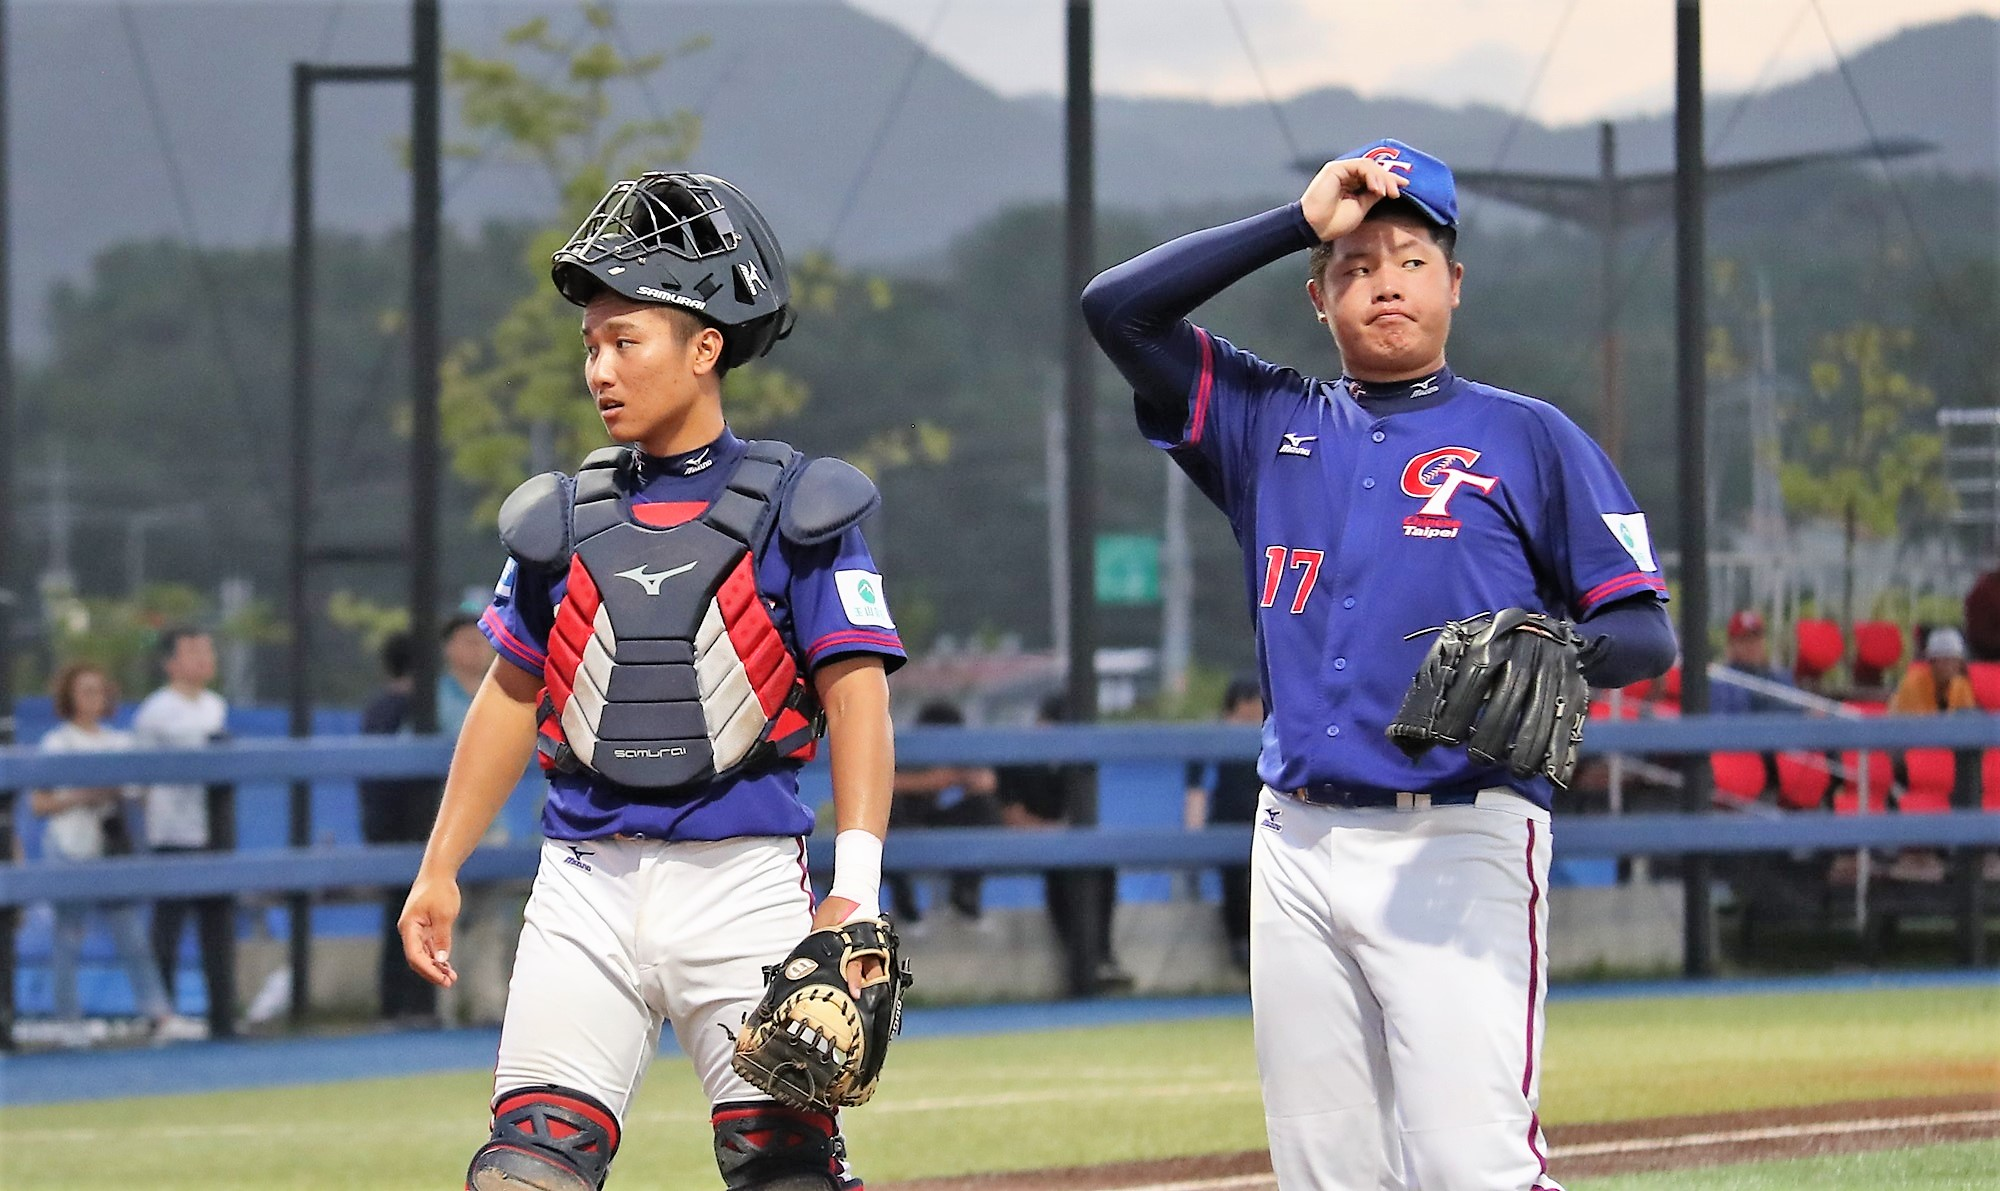 Things didn't go good for Chinese Taipei's pitching staff